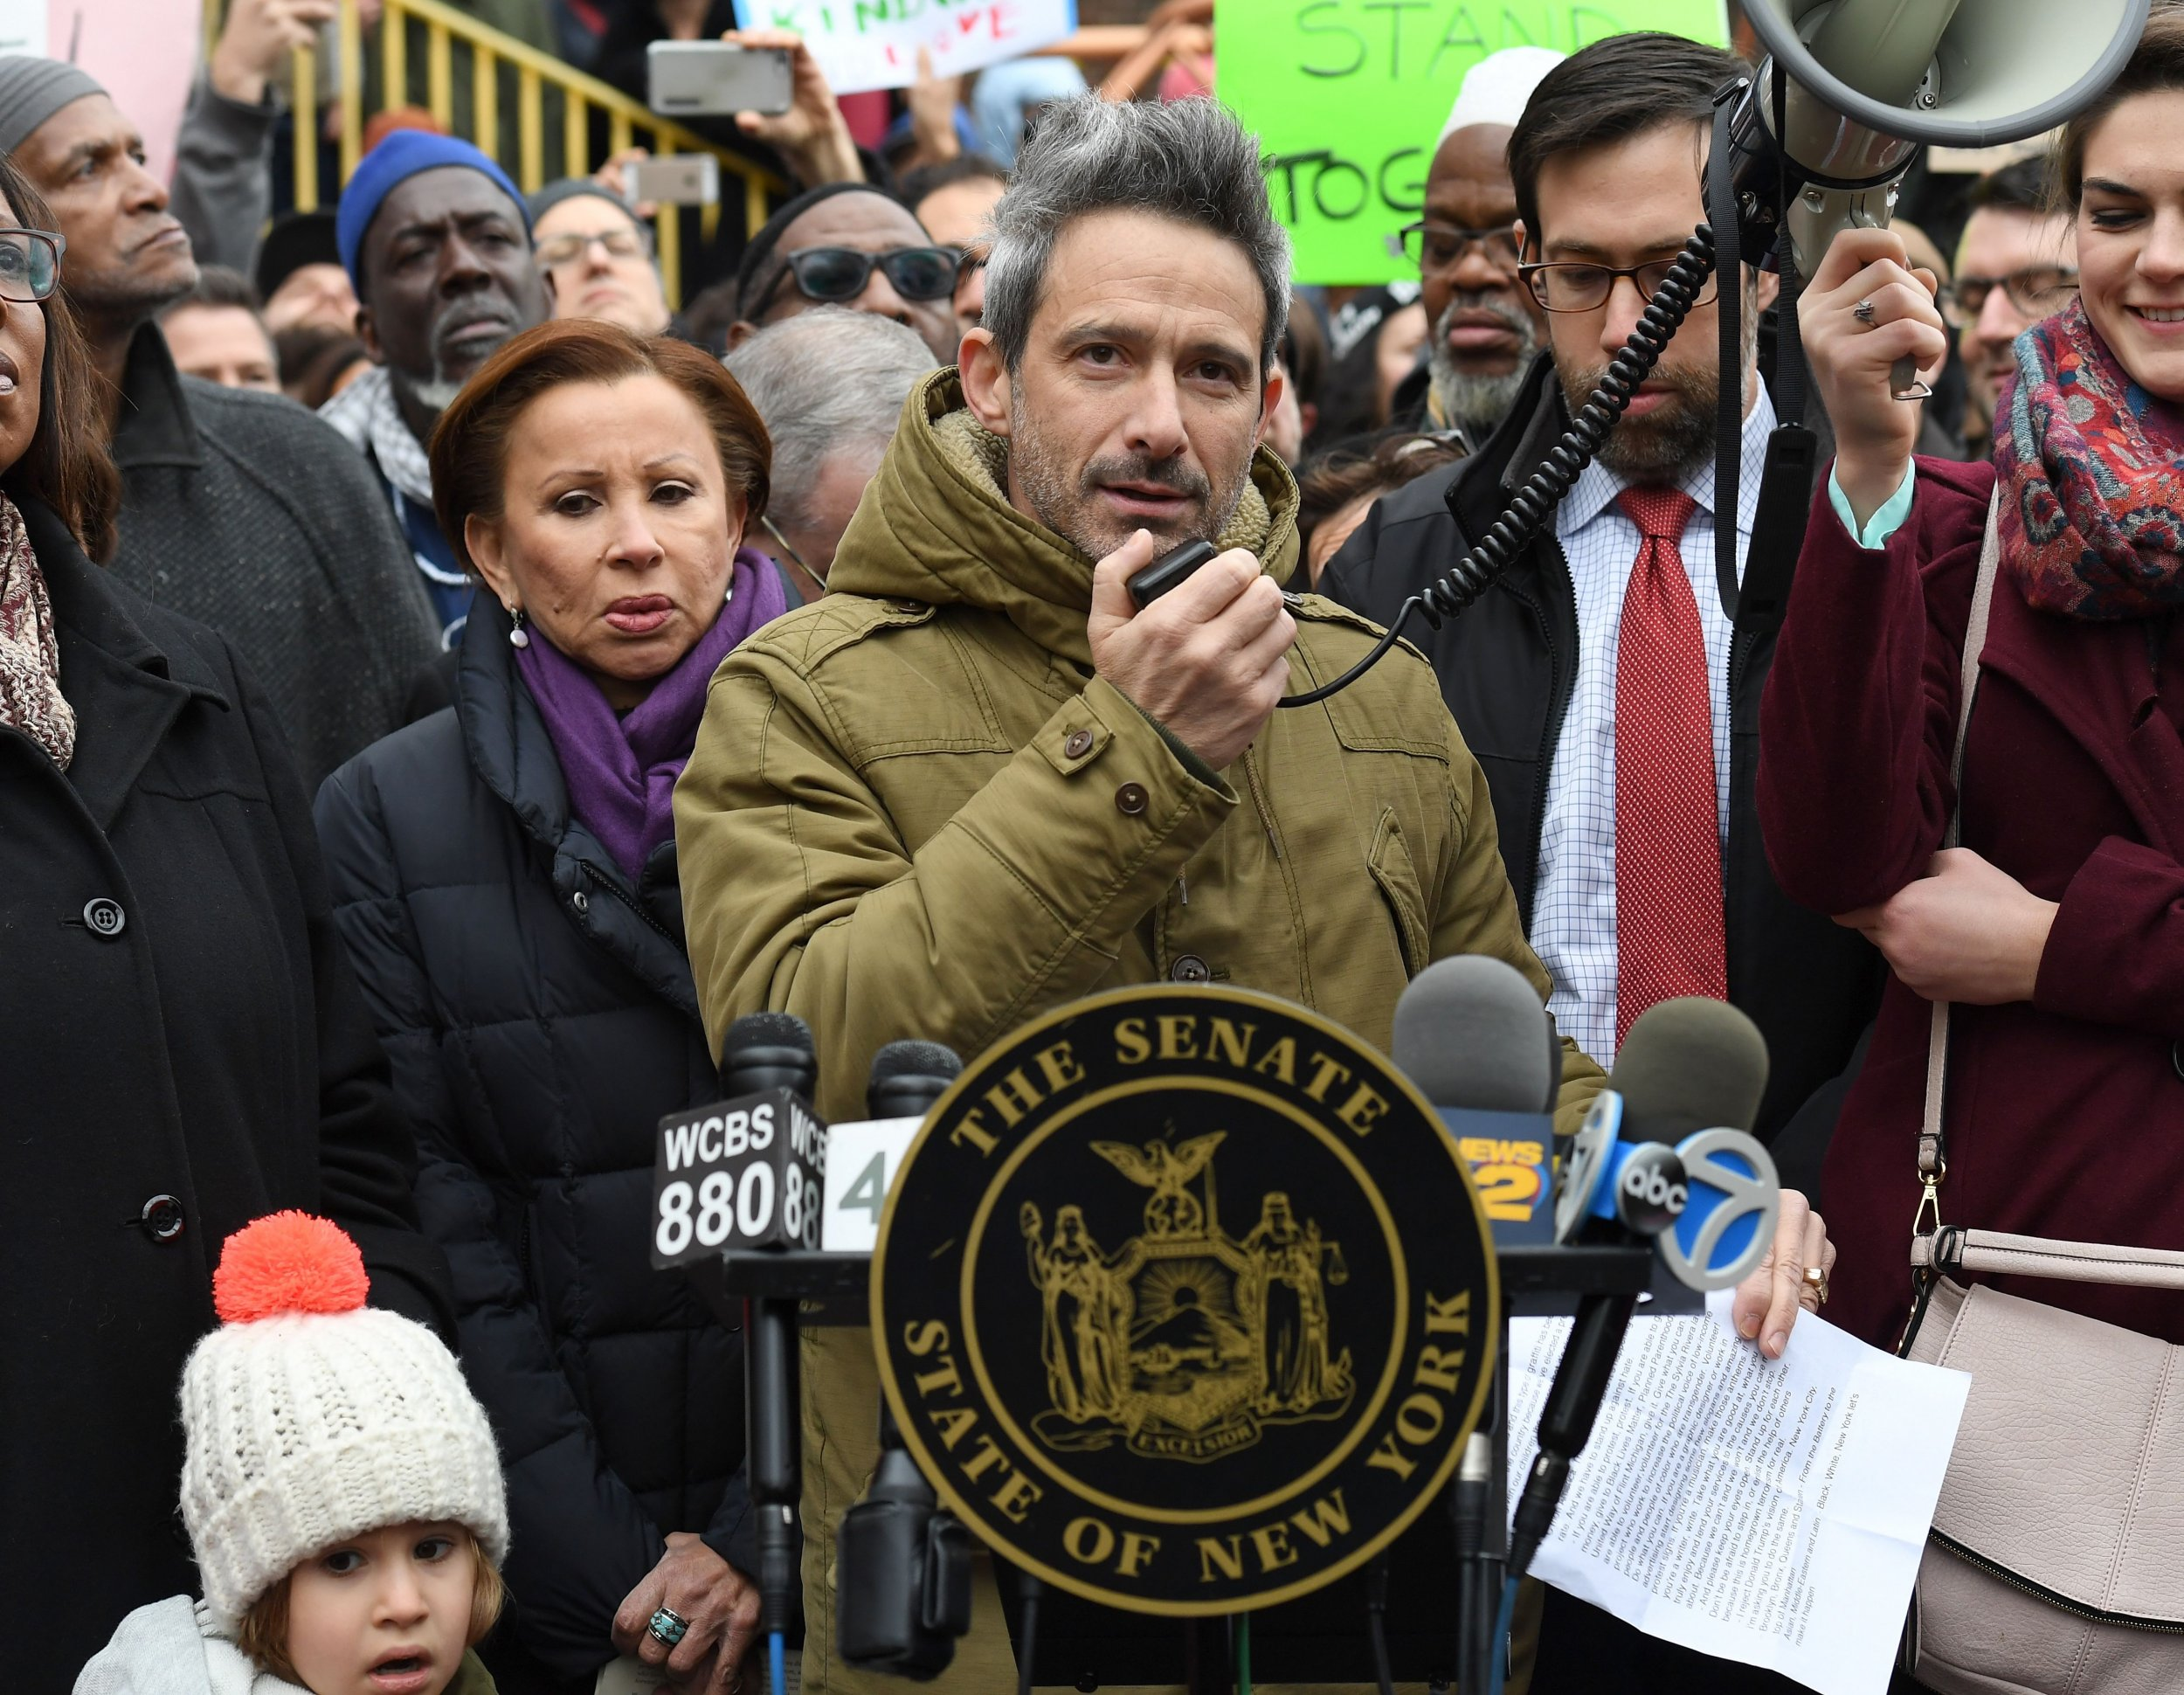 Adam Ad Rock Horovitz Of The Beastie Boys Speaks As Activists Protest Racism And After S Were Found In Yauch Park Brooklyn New York